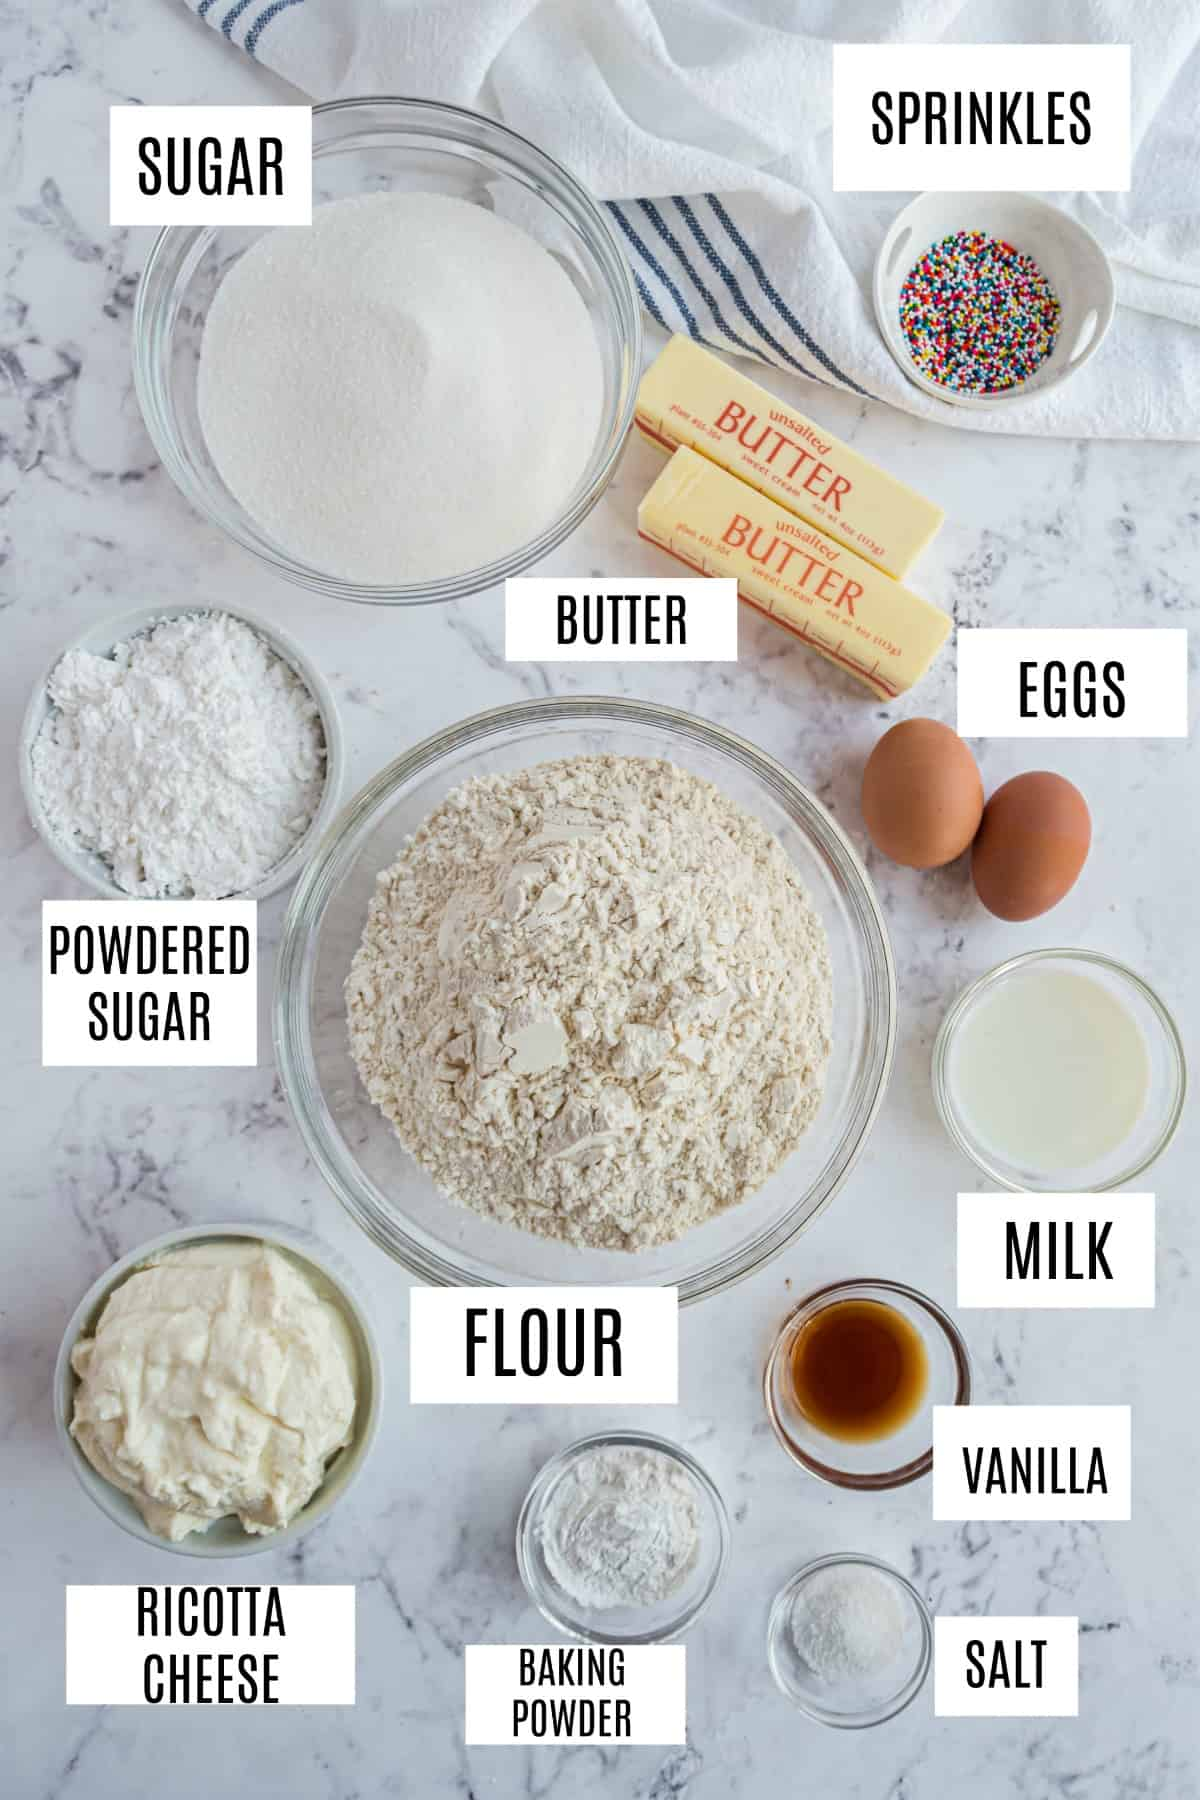 Ingredients needed for ricotta cookies, including butter, eggs, and ricotta cheese.